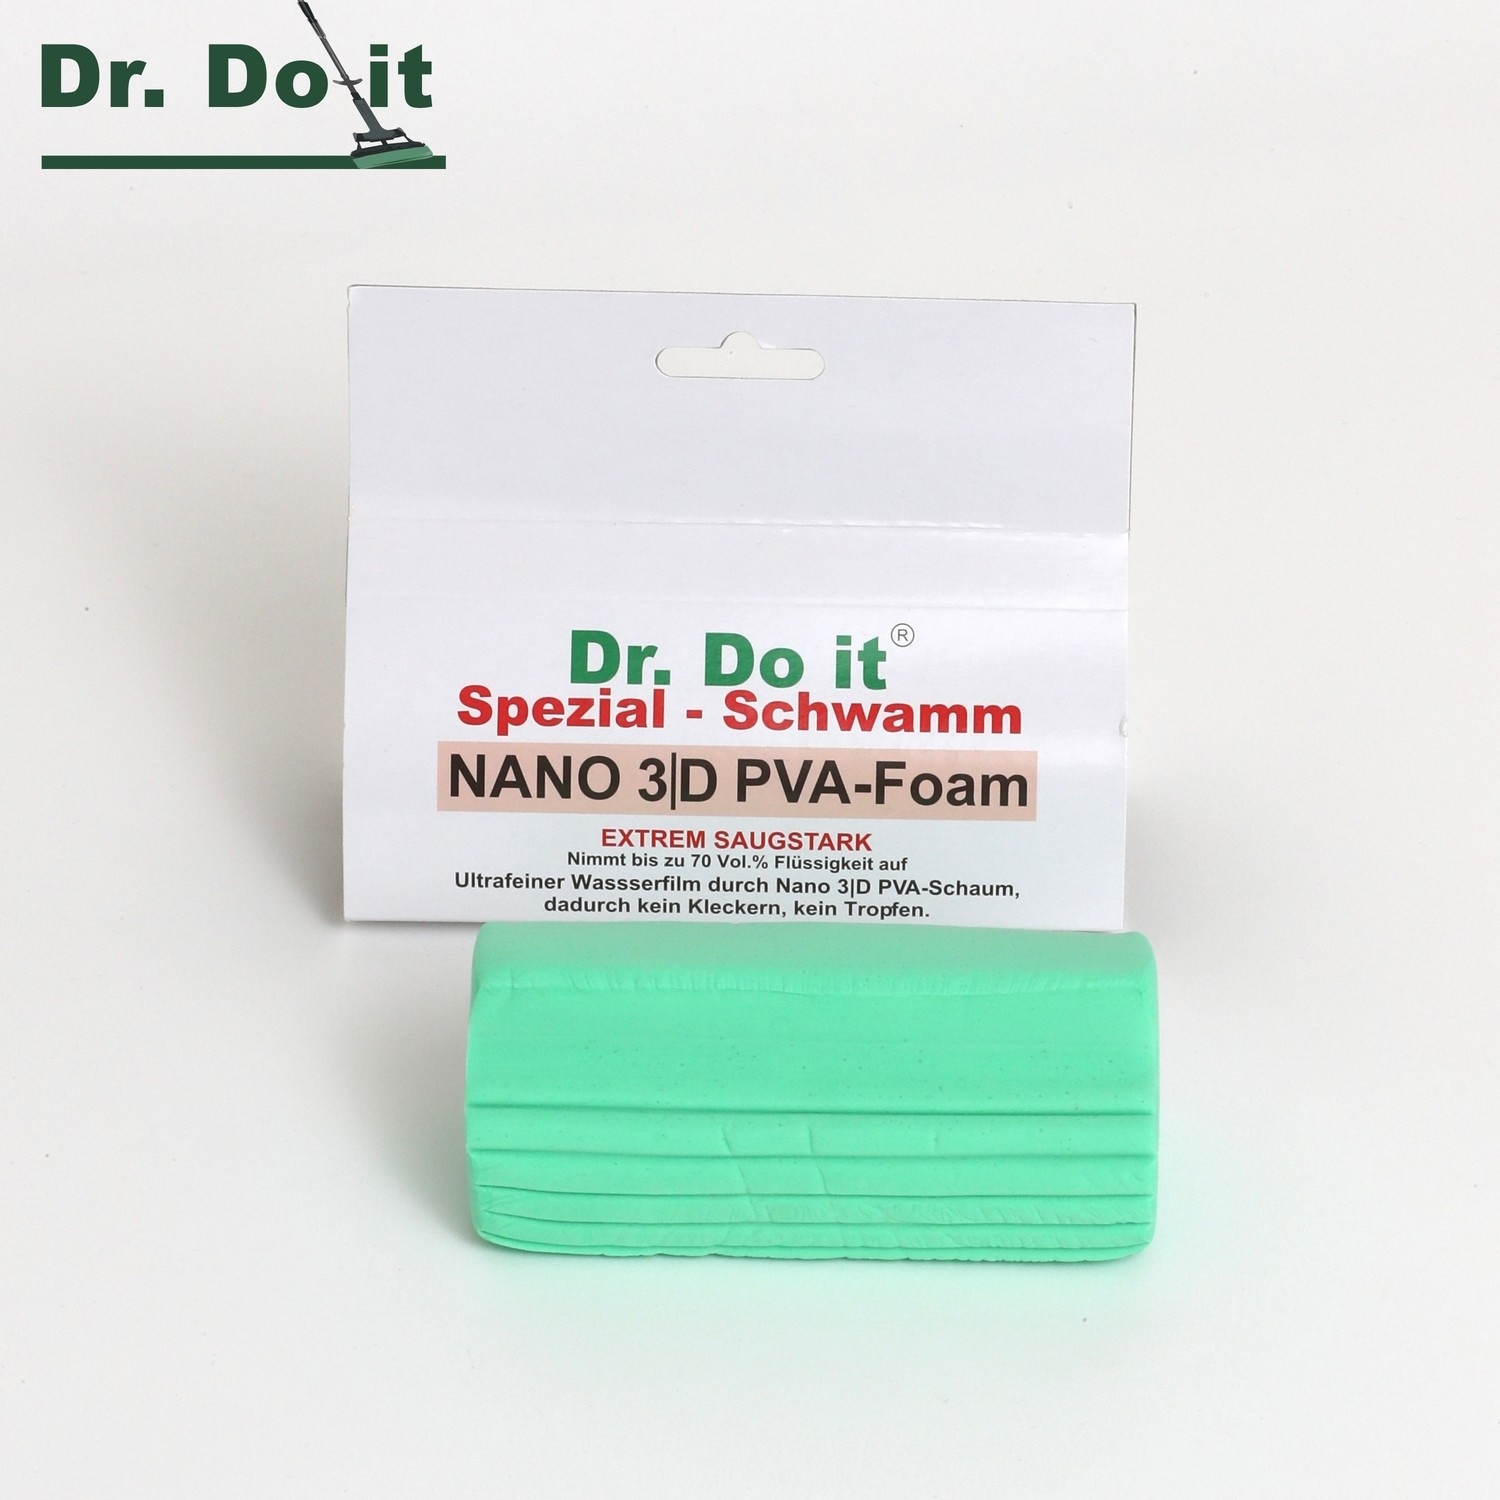 Dr. Do It Nano 3D Spezial-Schwamm